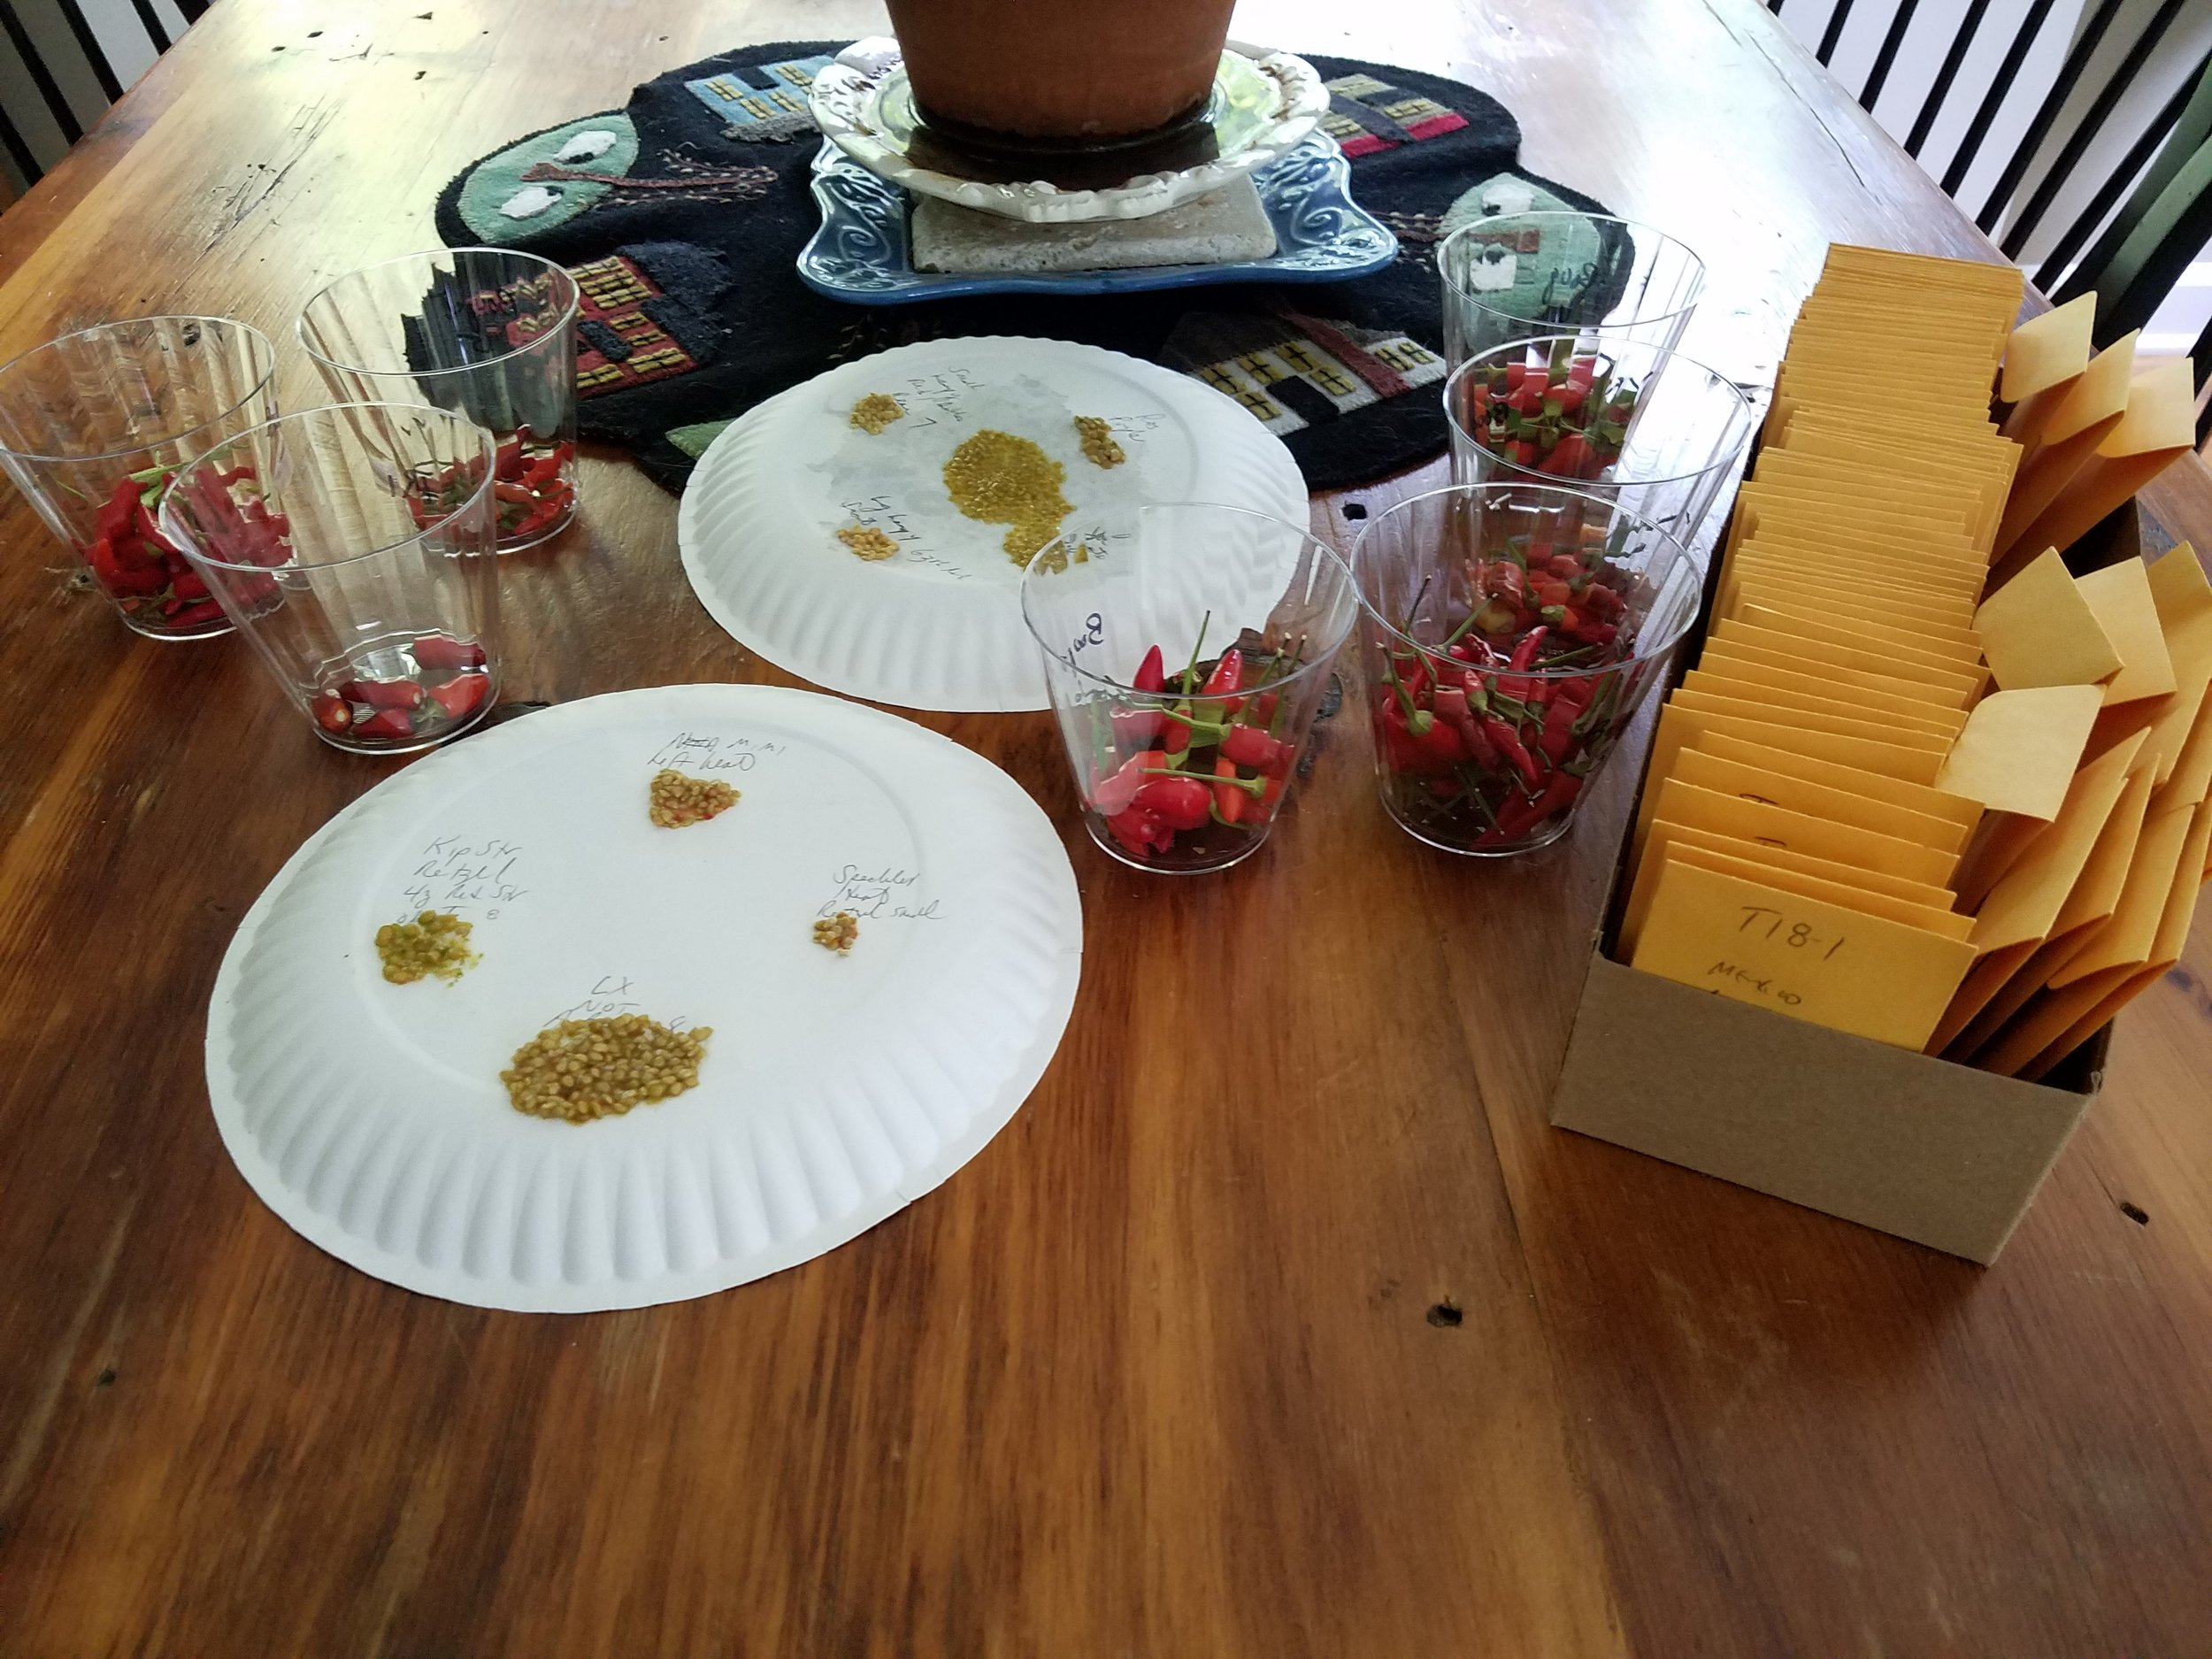 plates of drying tomato seeds, coin envelopes of saved seeds, cups of ornamental hot peppers ready for seed saving